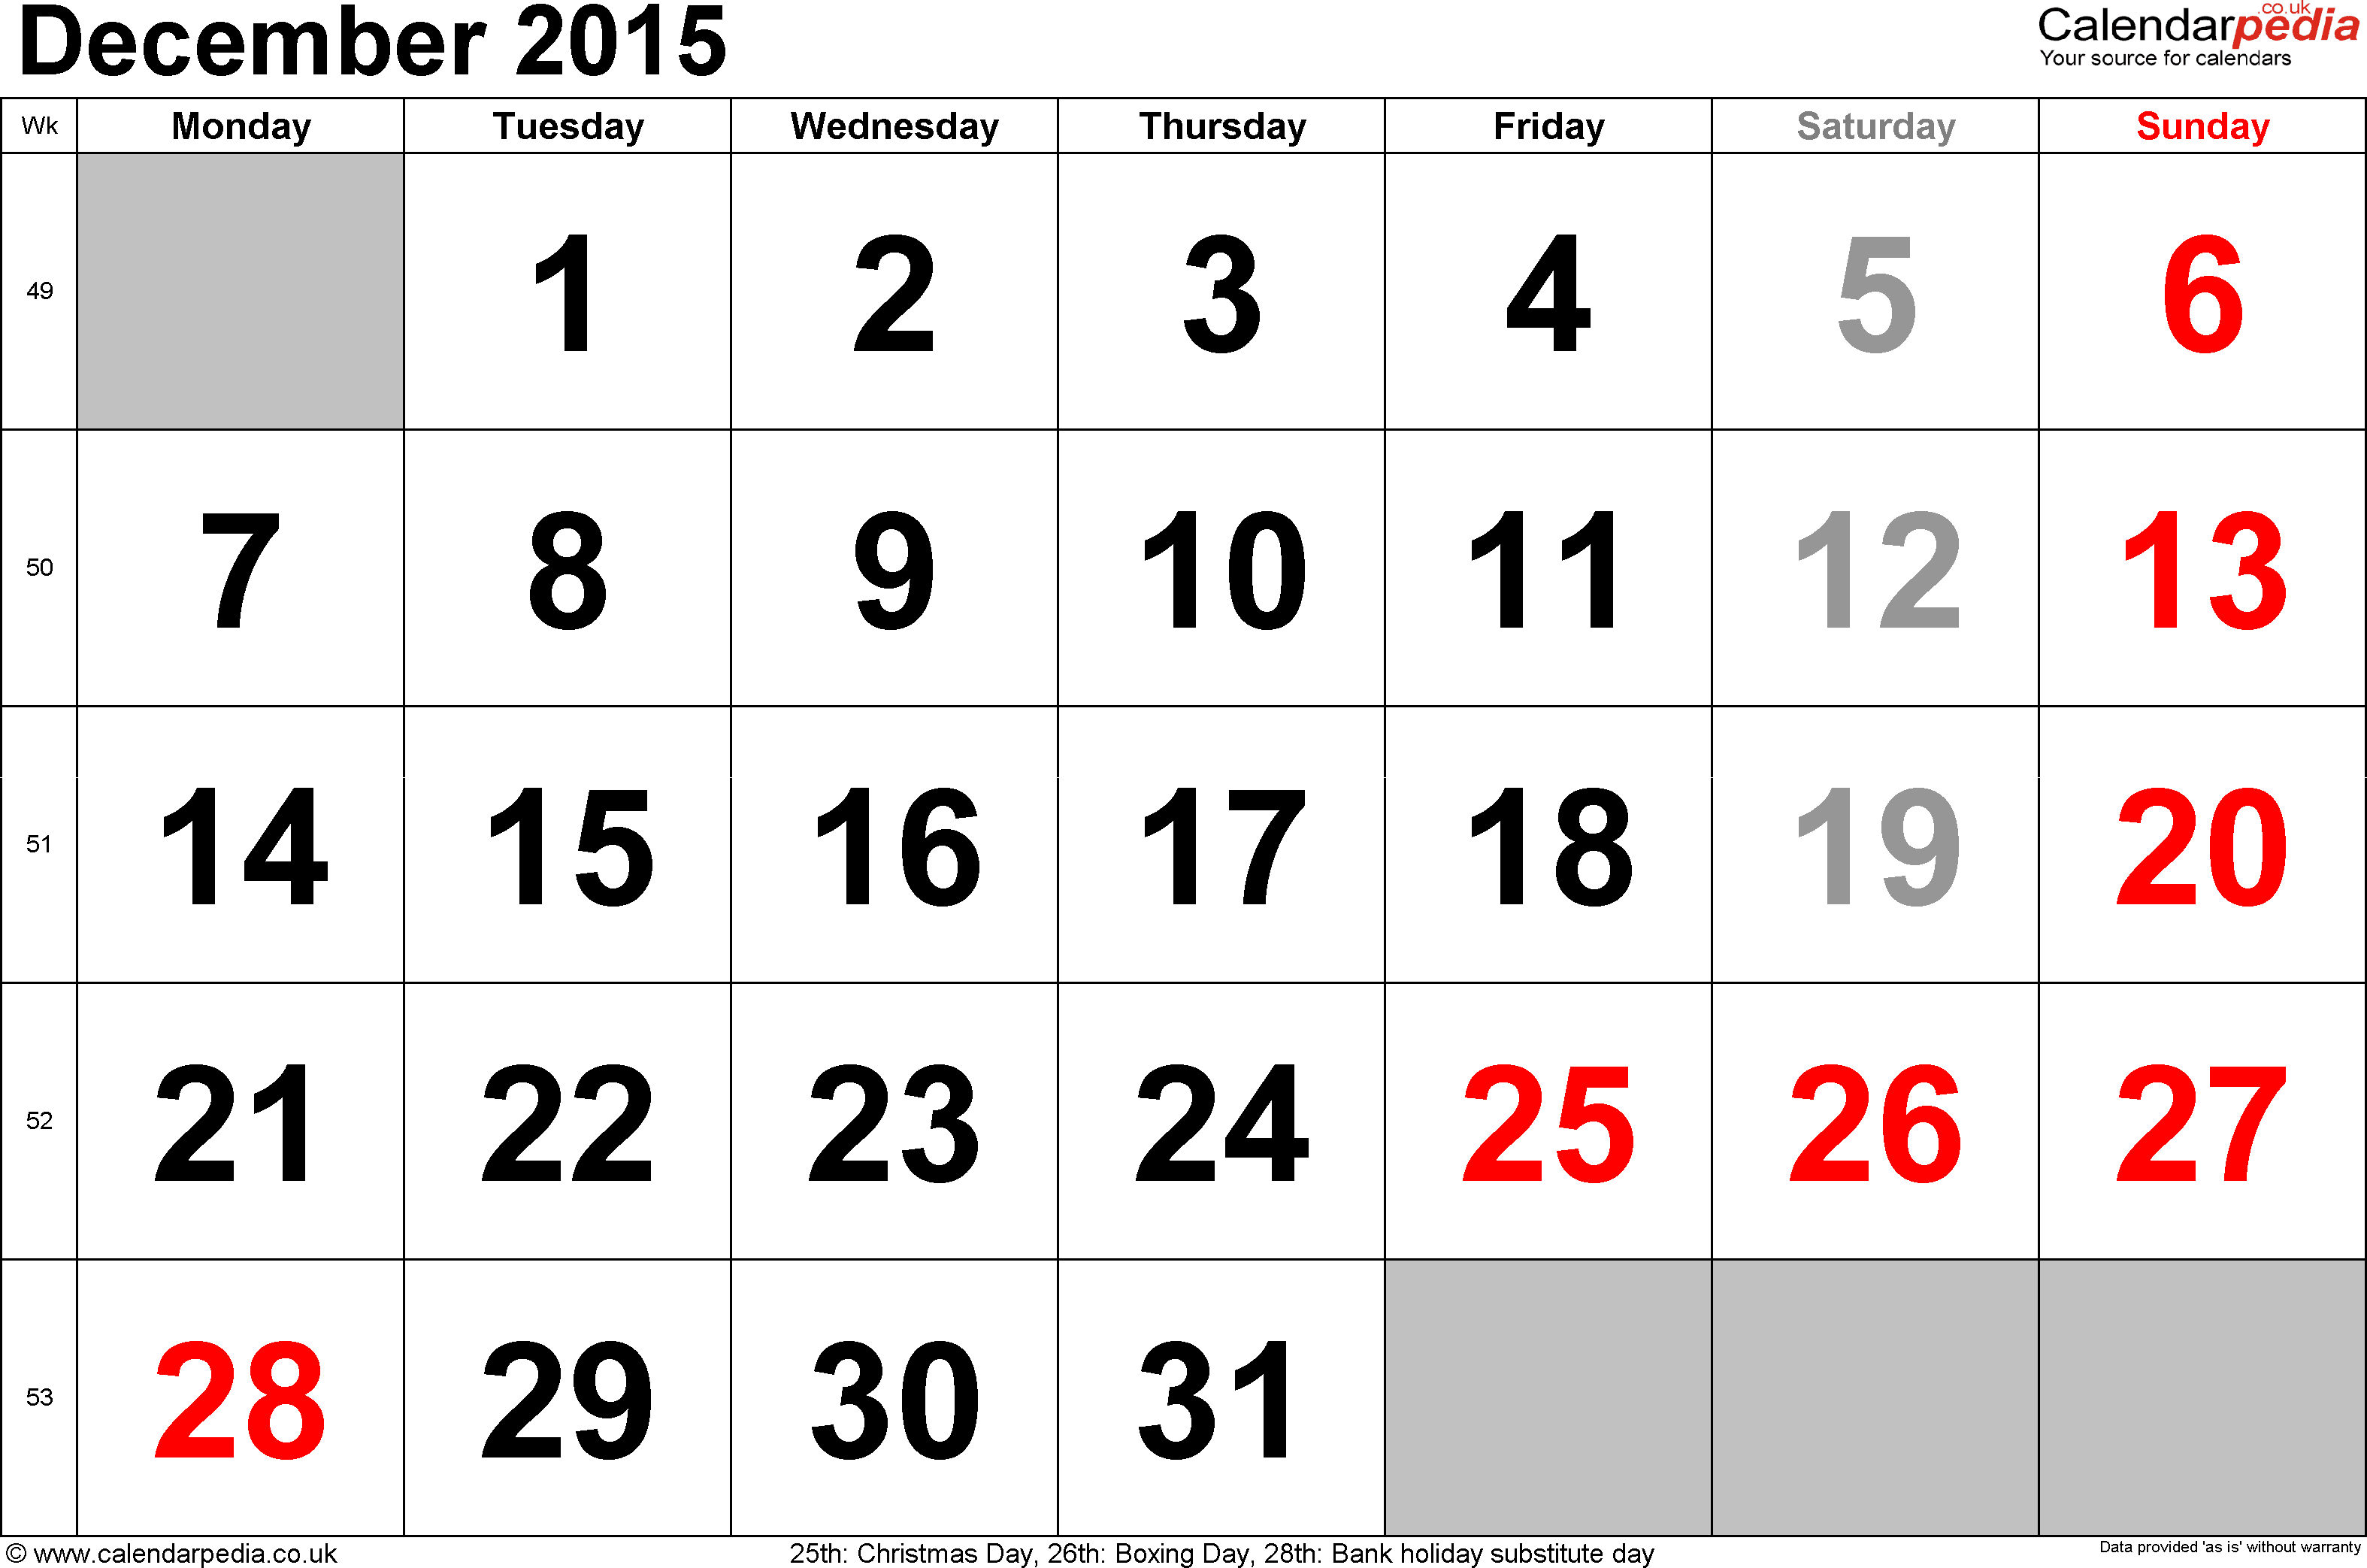 Calendar December 2015, landscape orientation, large numerals, 1 page, with UK bank holidays and week numbers